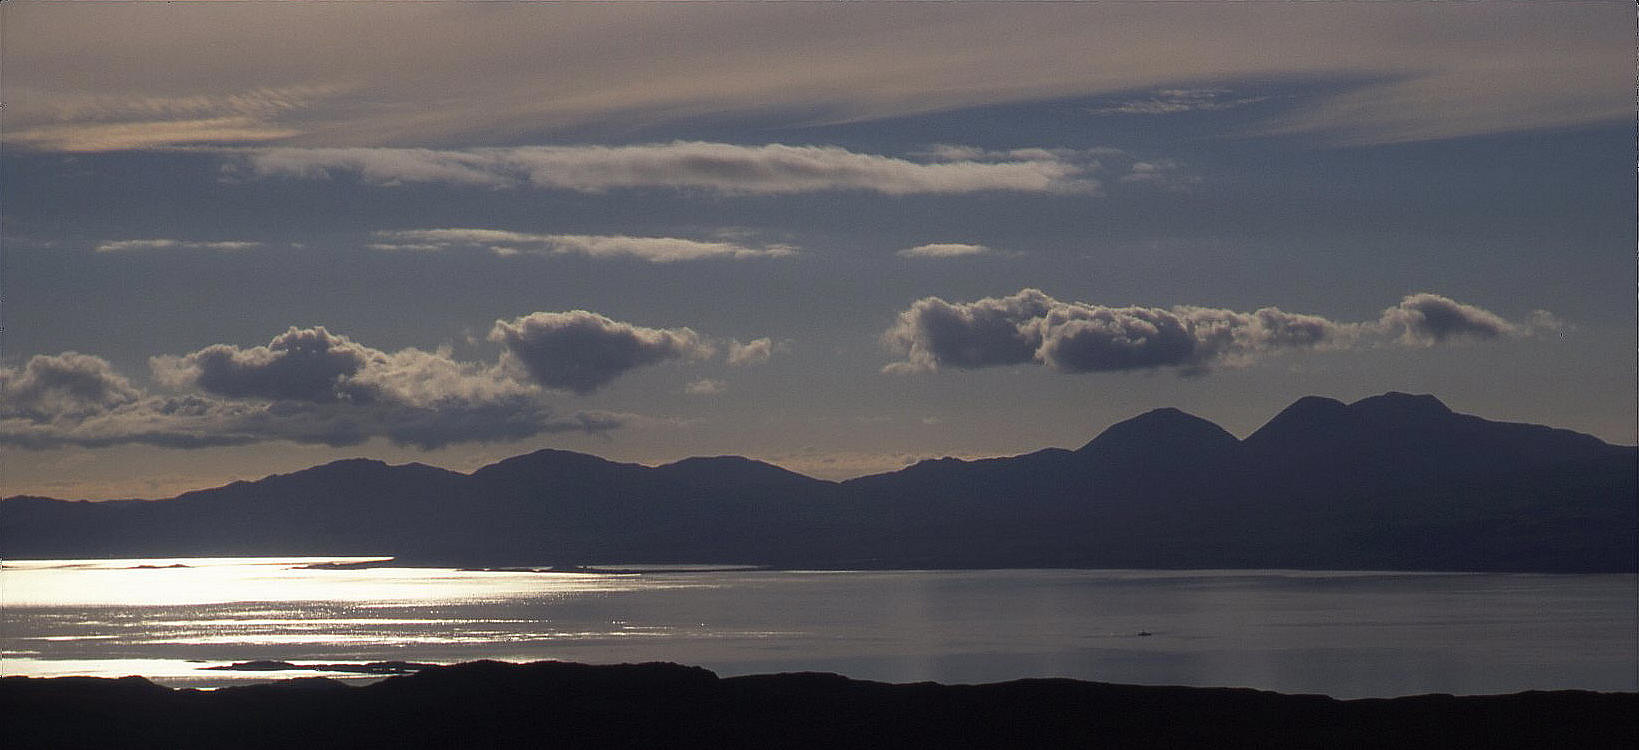 The Sound of Jura, western Scotland in 2002